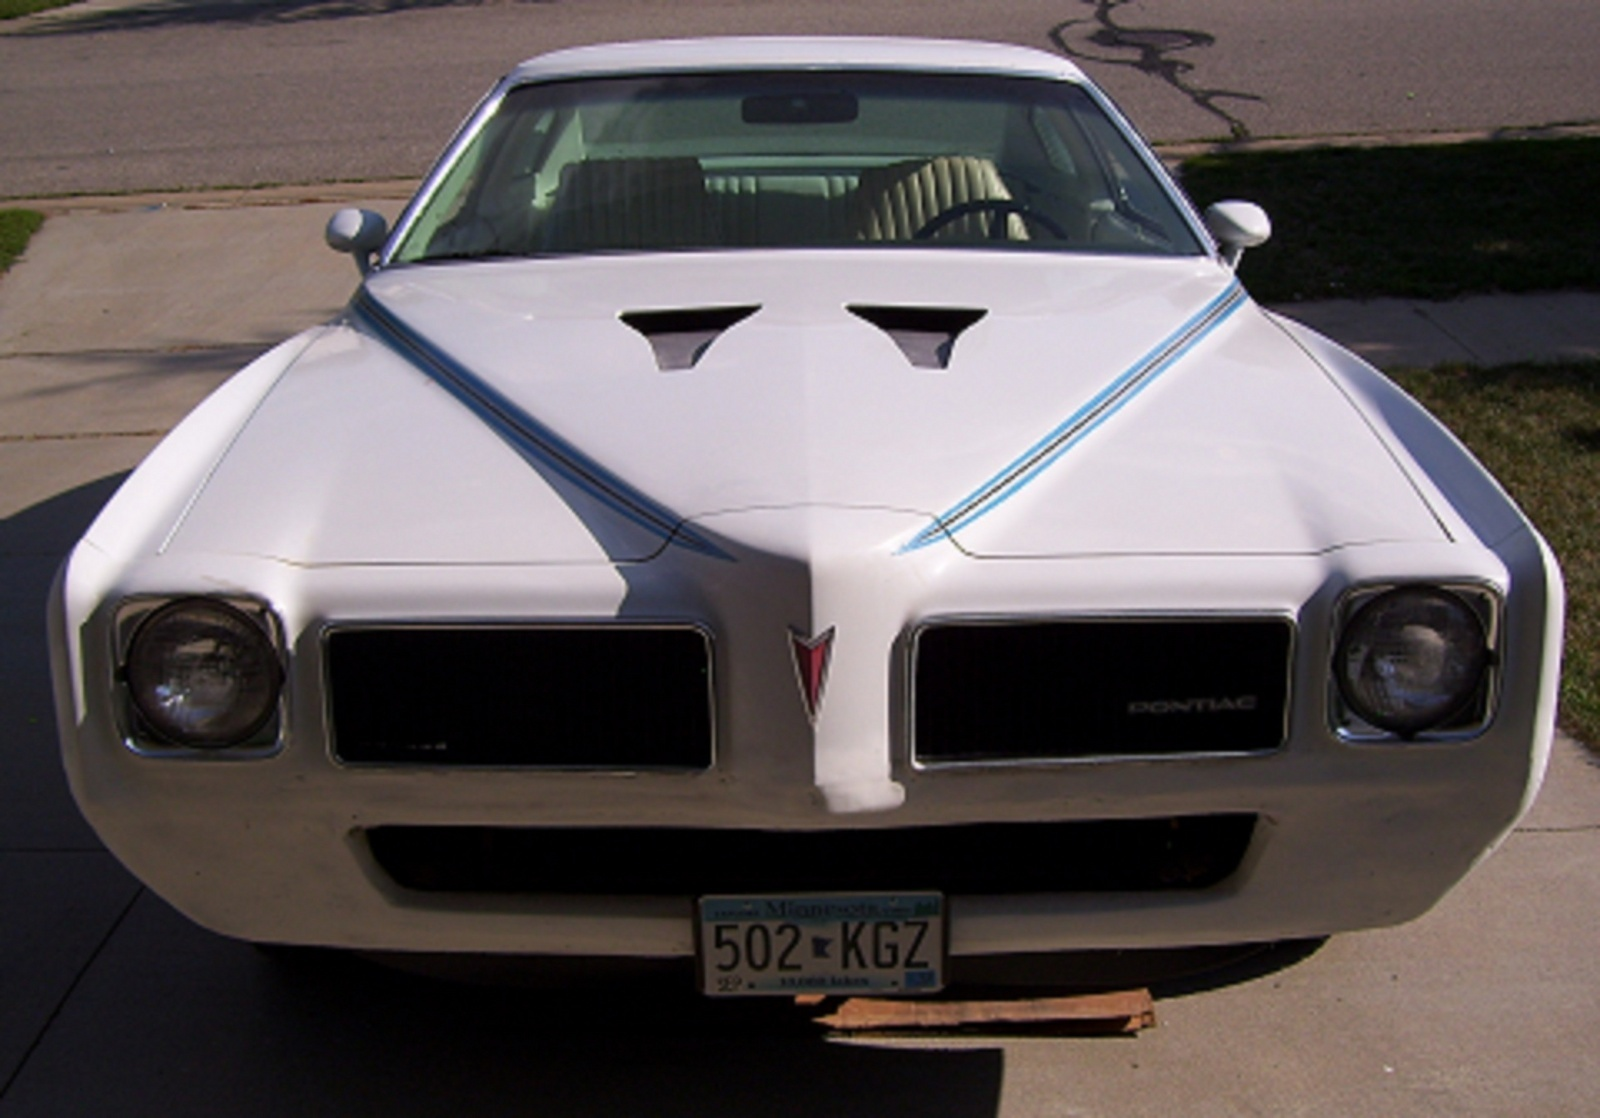 Worksheet. 1973 Pontiac GTO  Overview  CarGurus